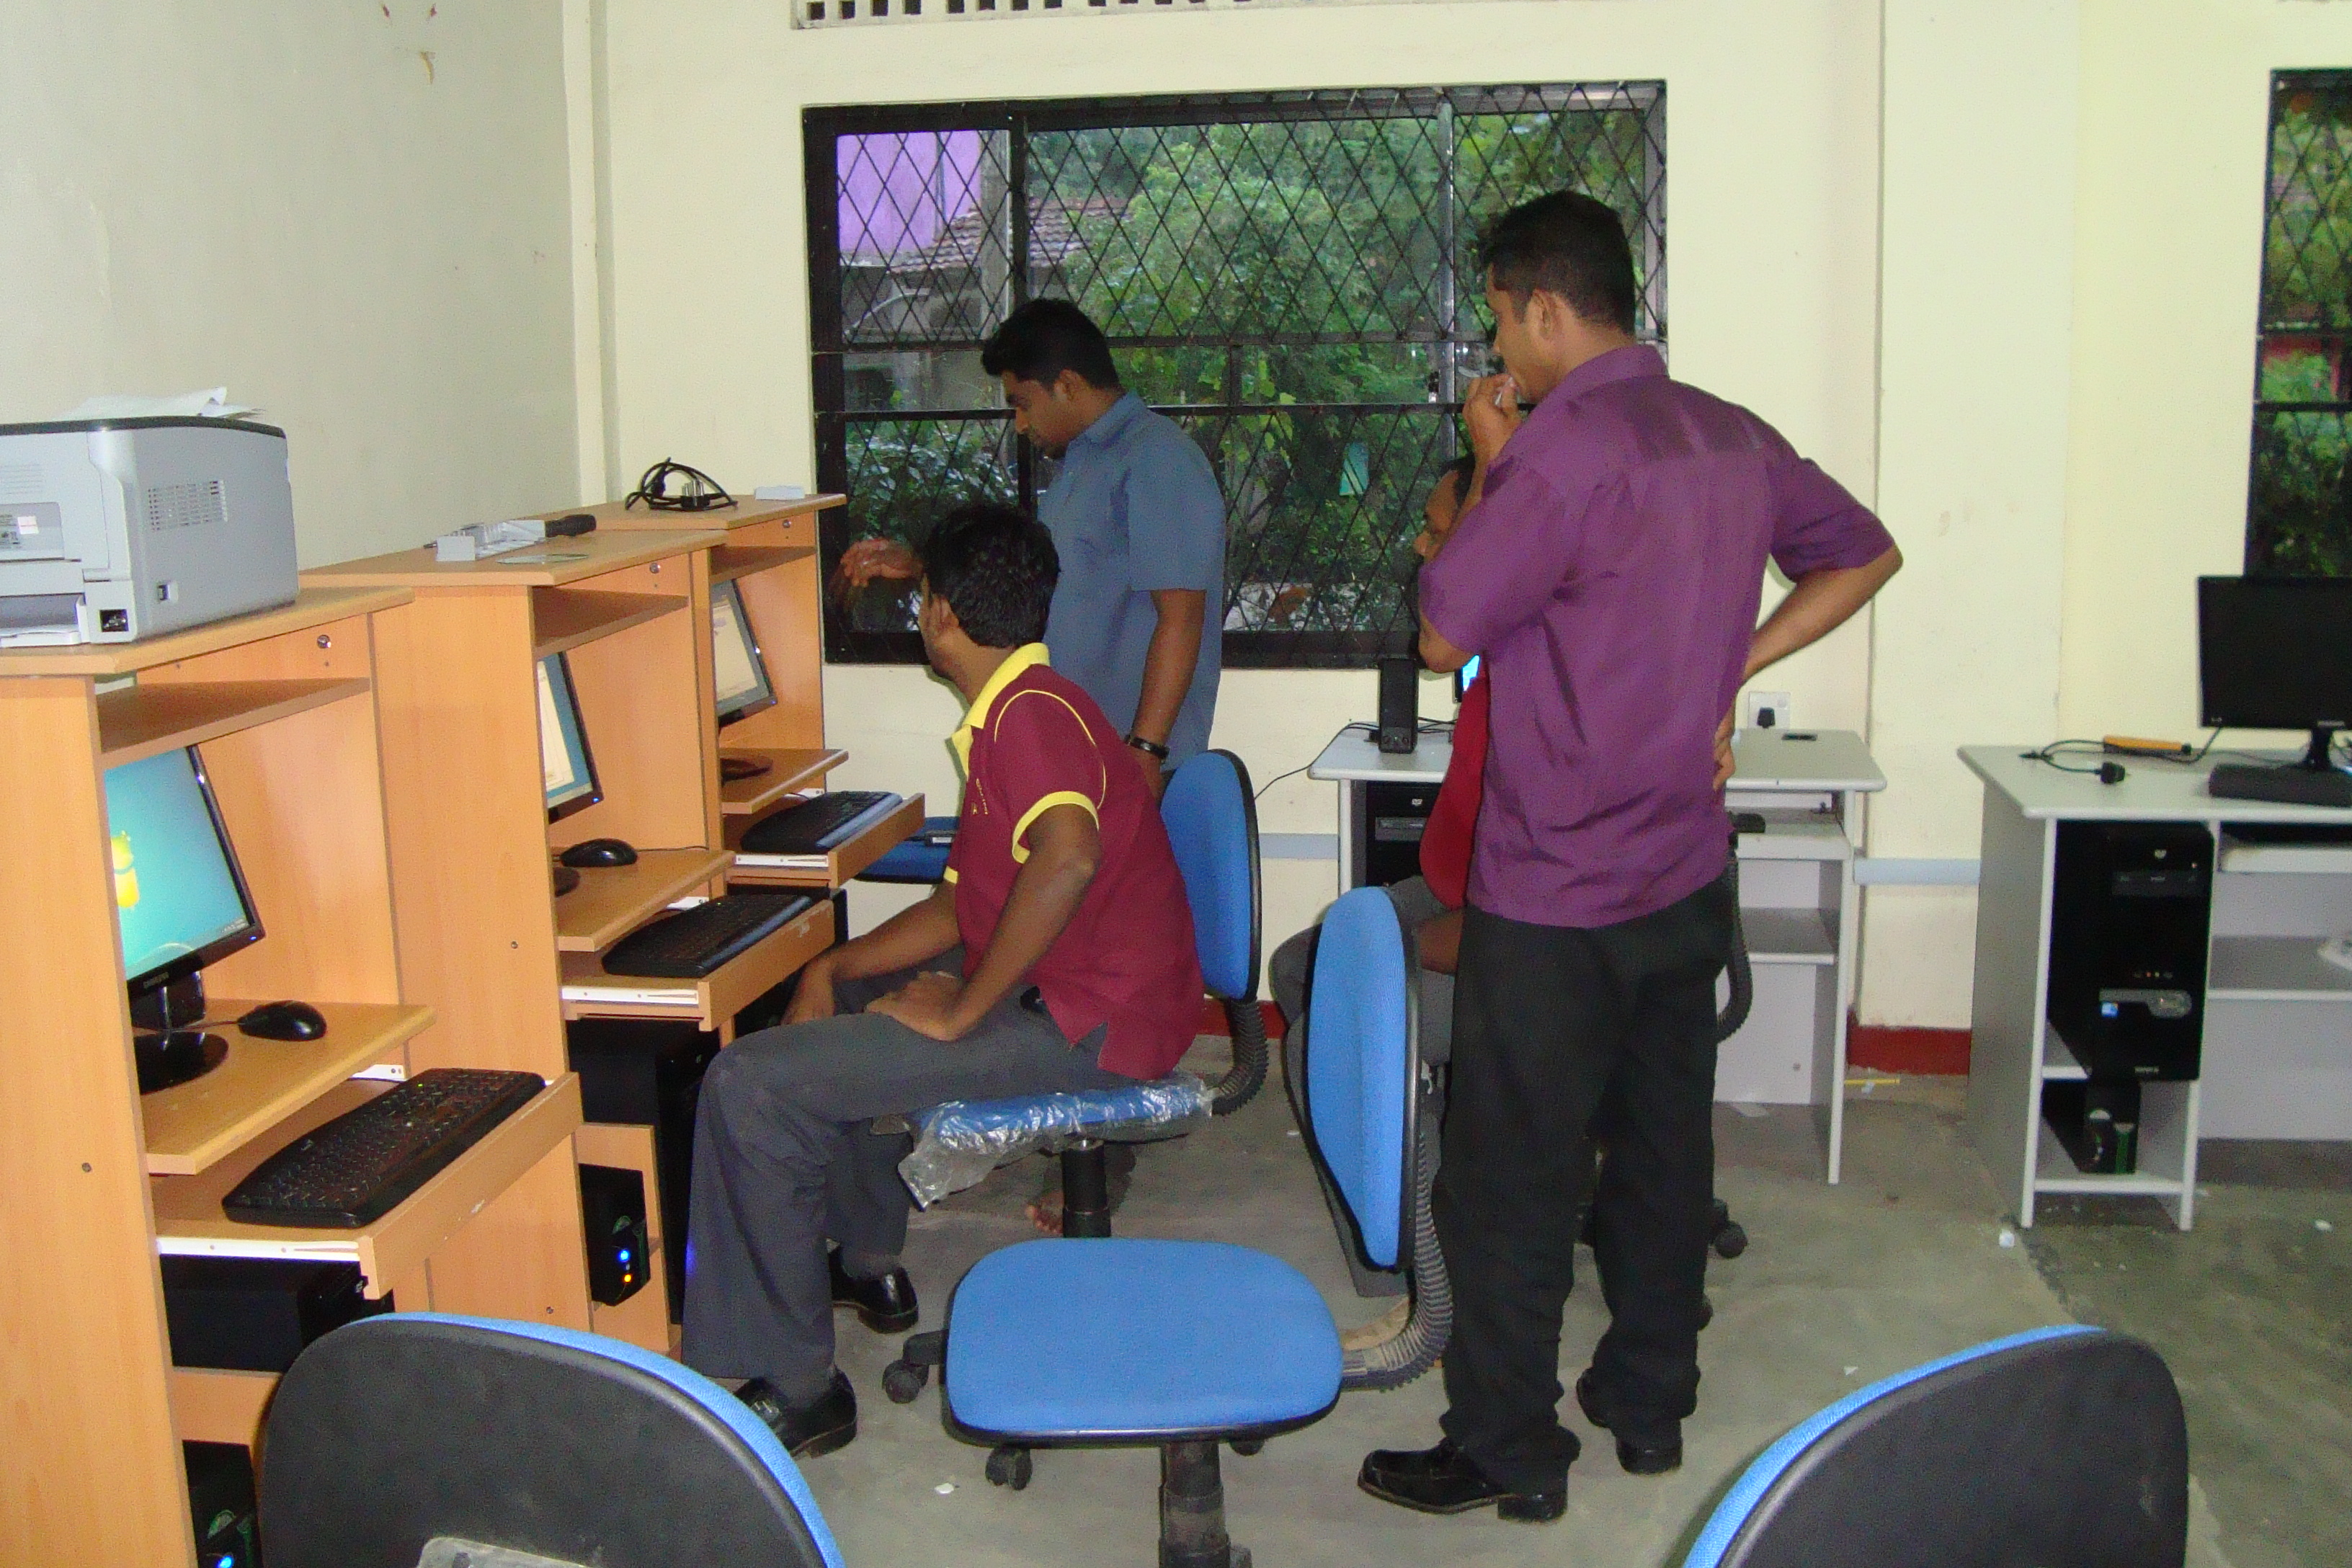 You are browsing images from the article: Computer Hardware Workshop - Uva Province